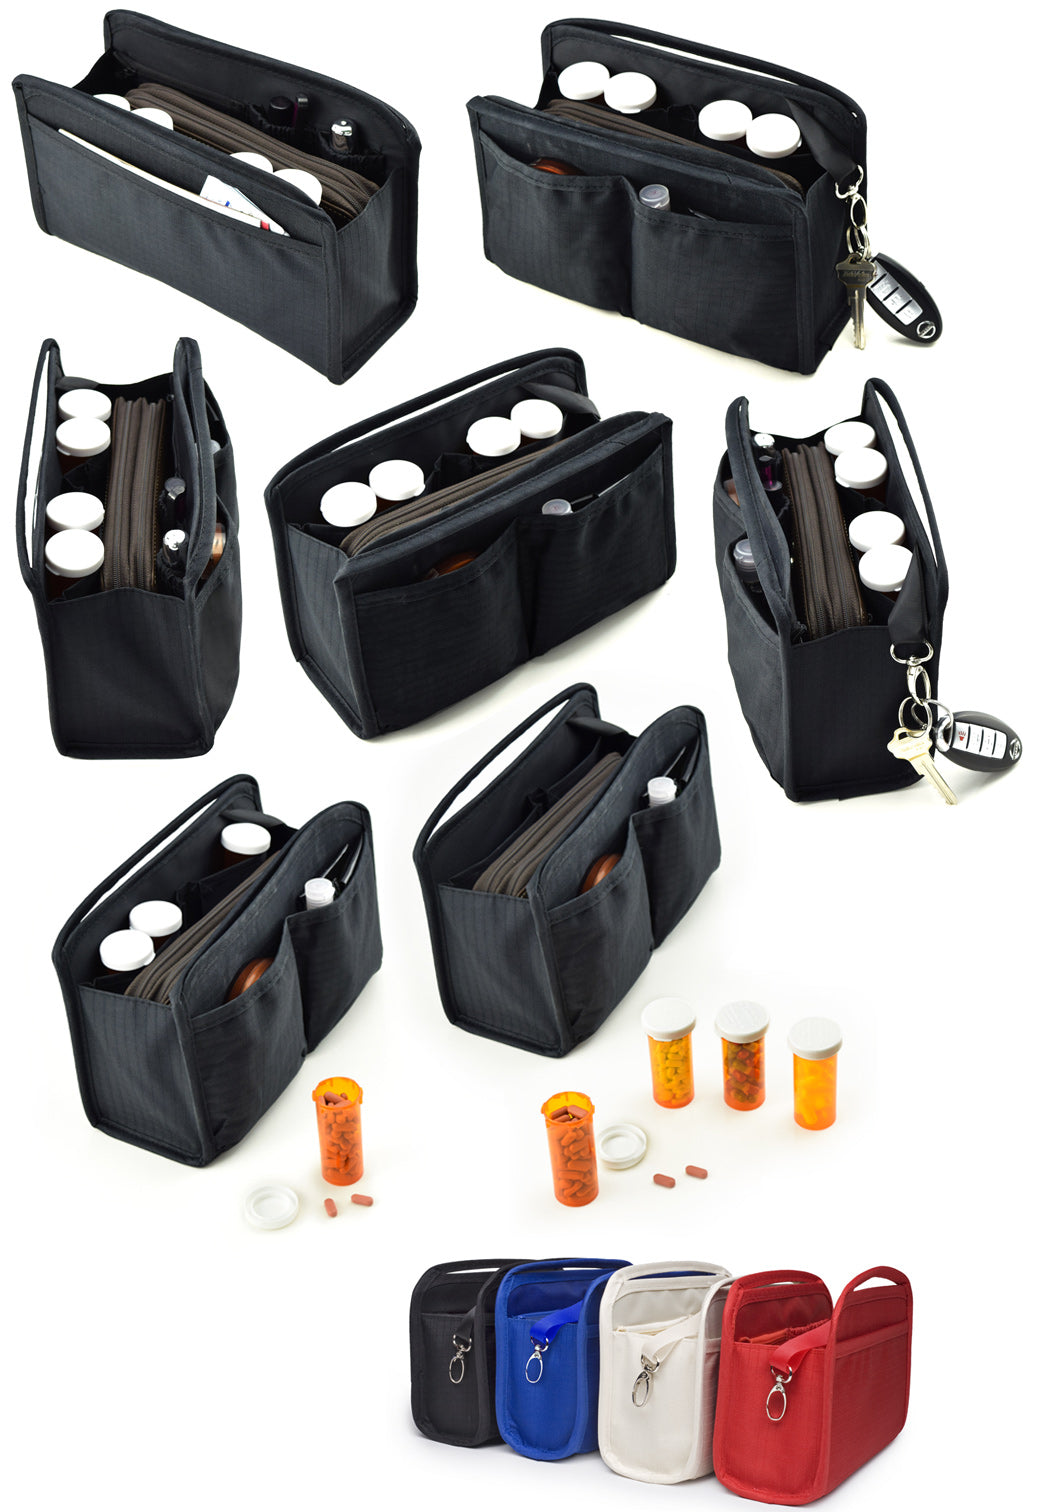 Purse Organizer with 4 Pill Vials